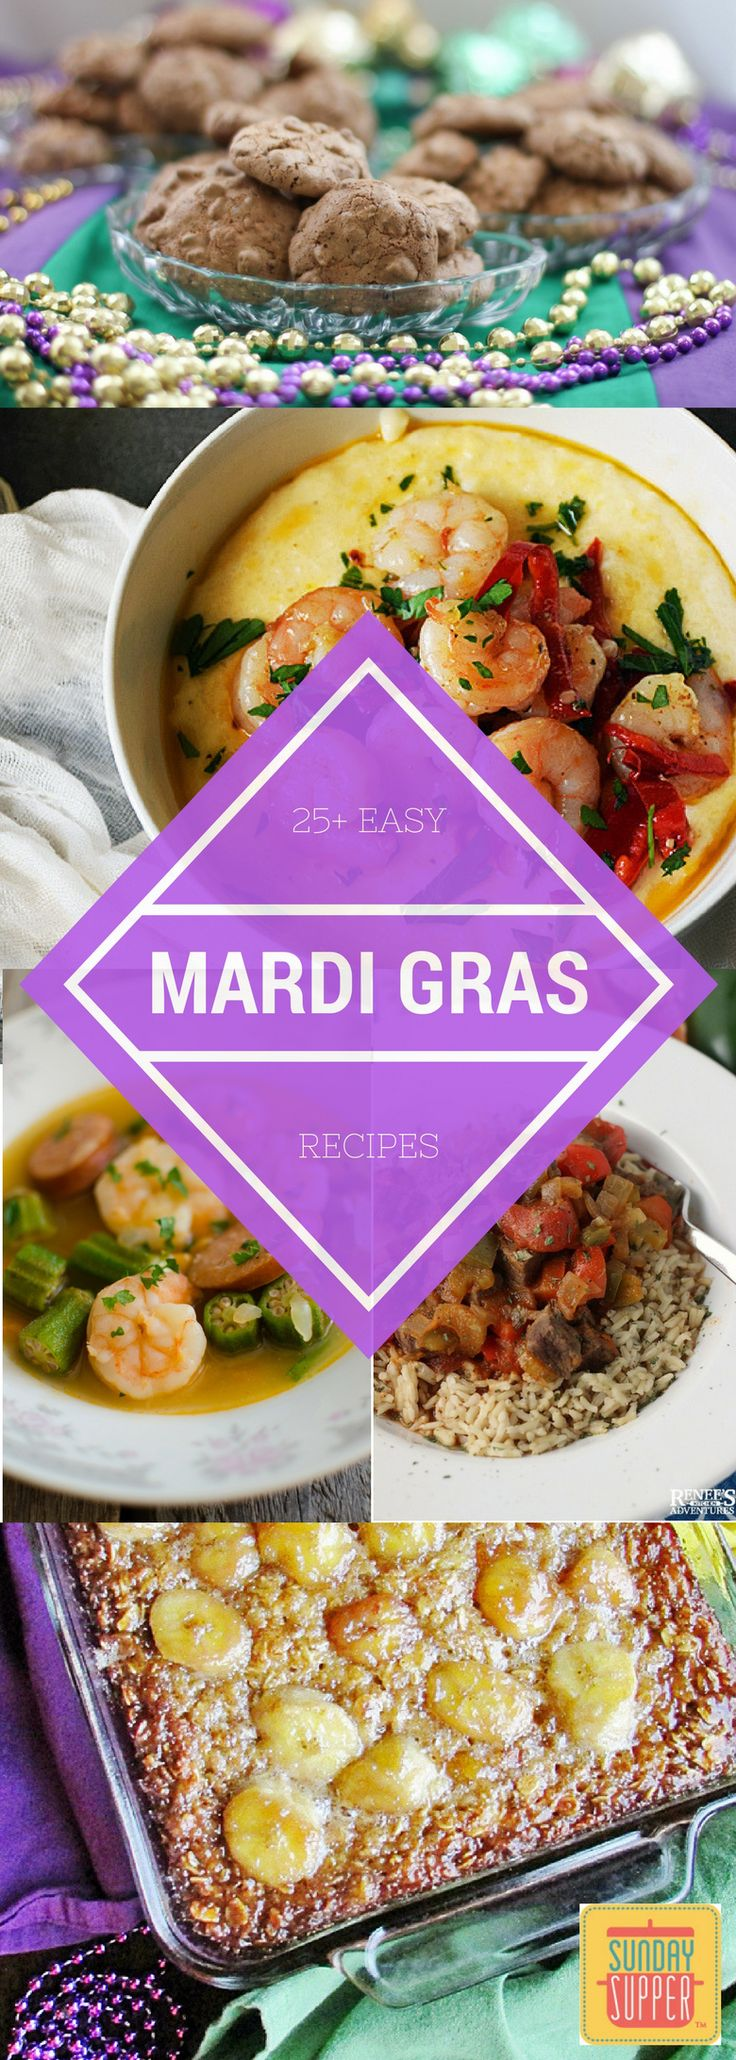 Sunday Supper tastemakers narrow down some of the most decadent, easy Mardi Gras recipes that are sure to make you want to party, too! #SundaySupper